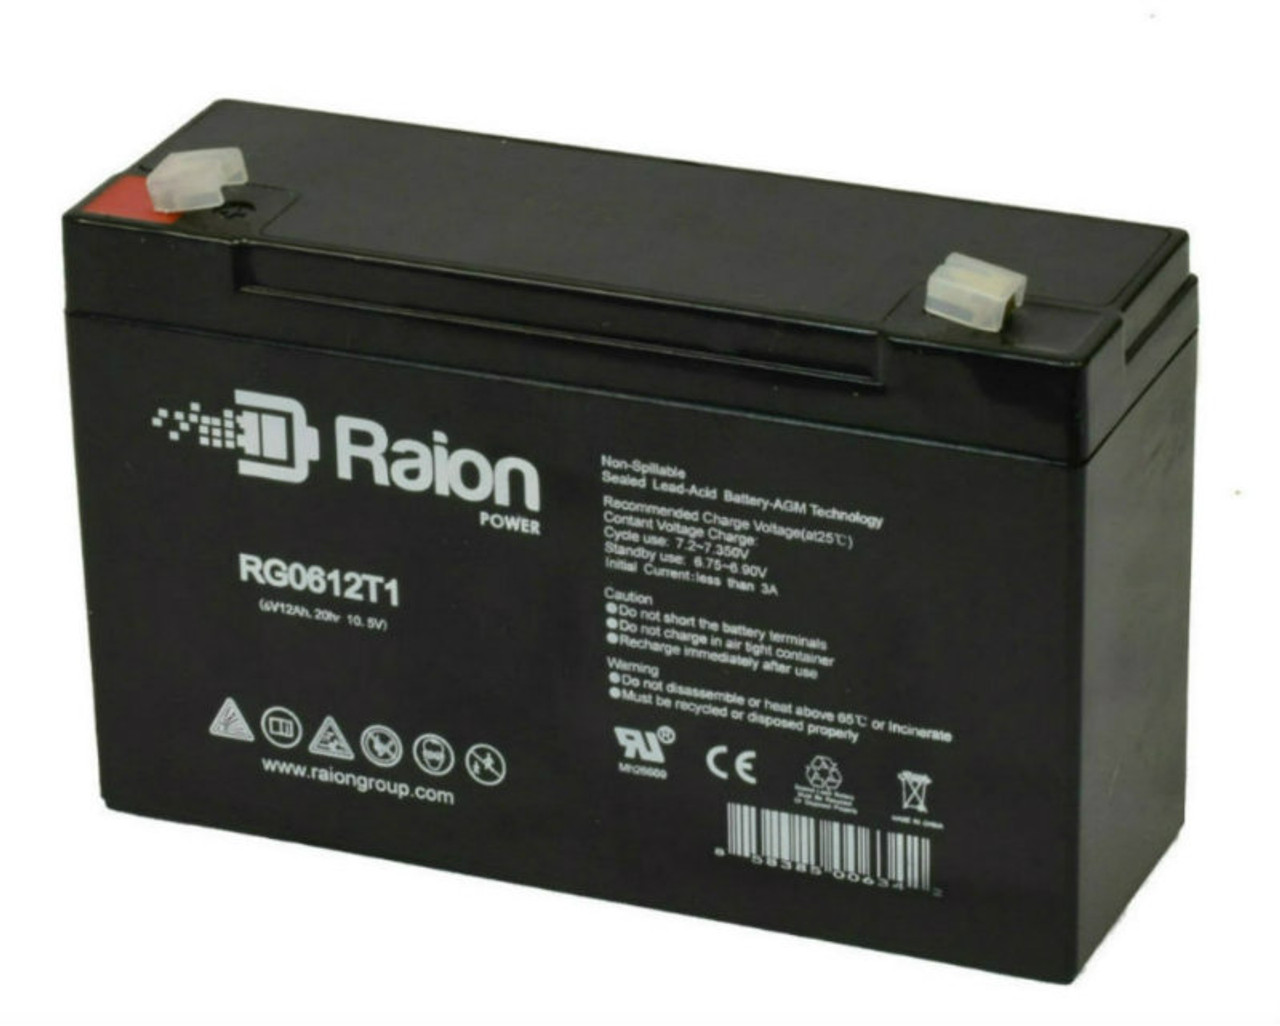 Raion Power RG06120T1 Replacement Battery Pack for Sure-Lites XR5 emergency light